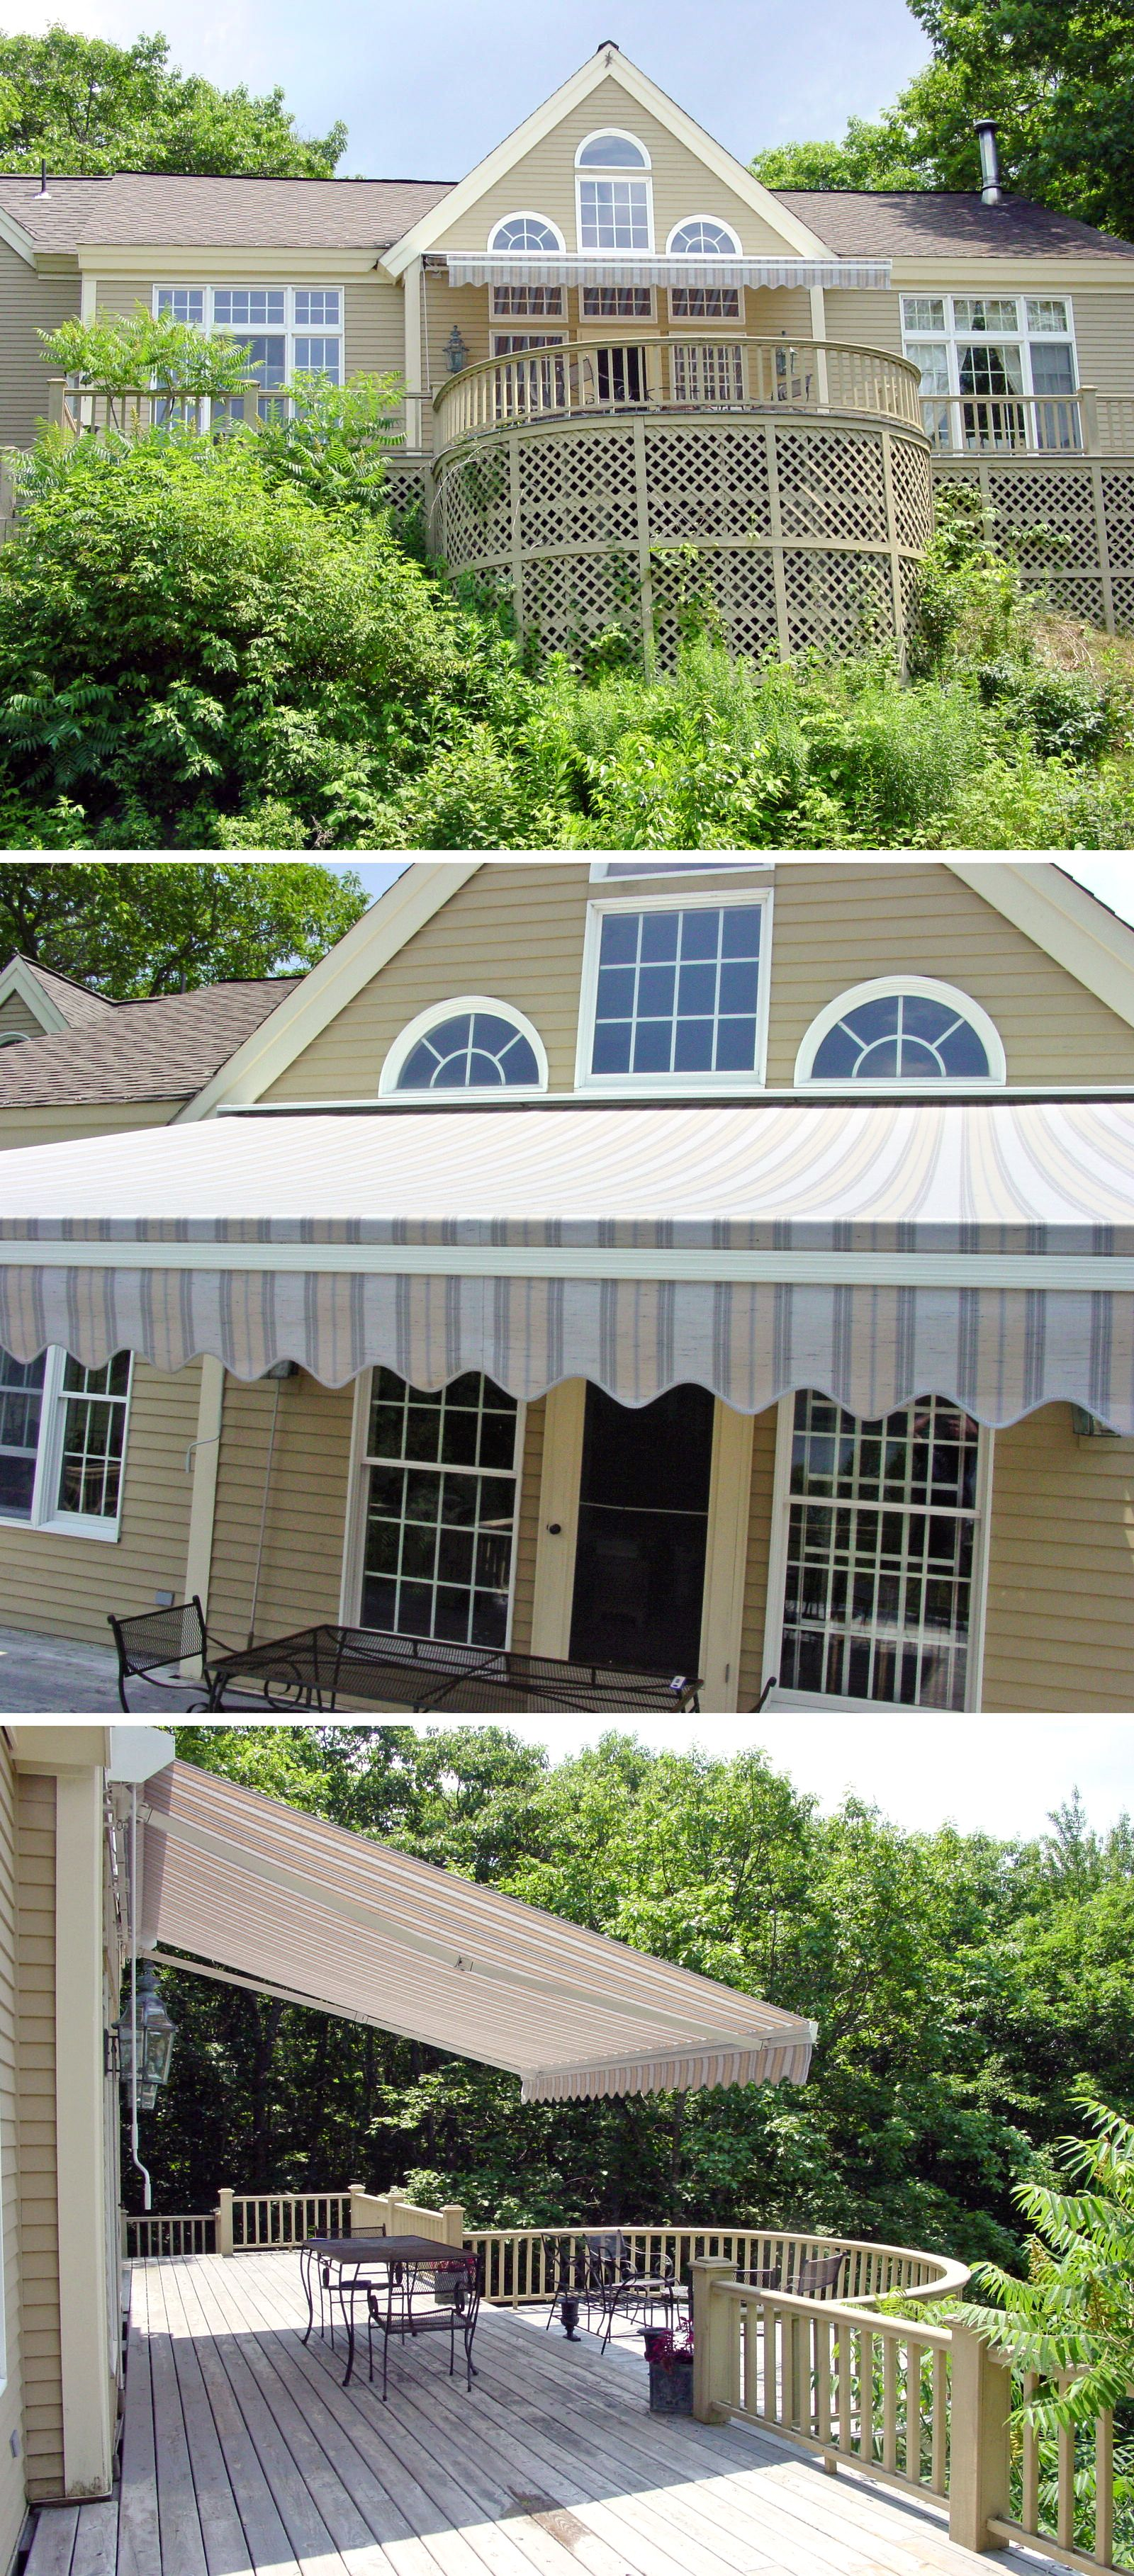 +200 How Much Do Sunsetter Awnings Cost | Home Decor